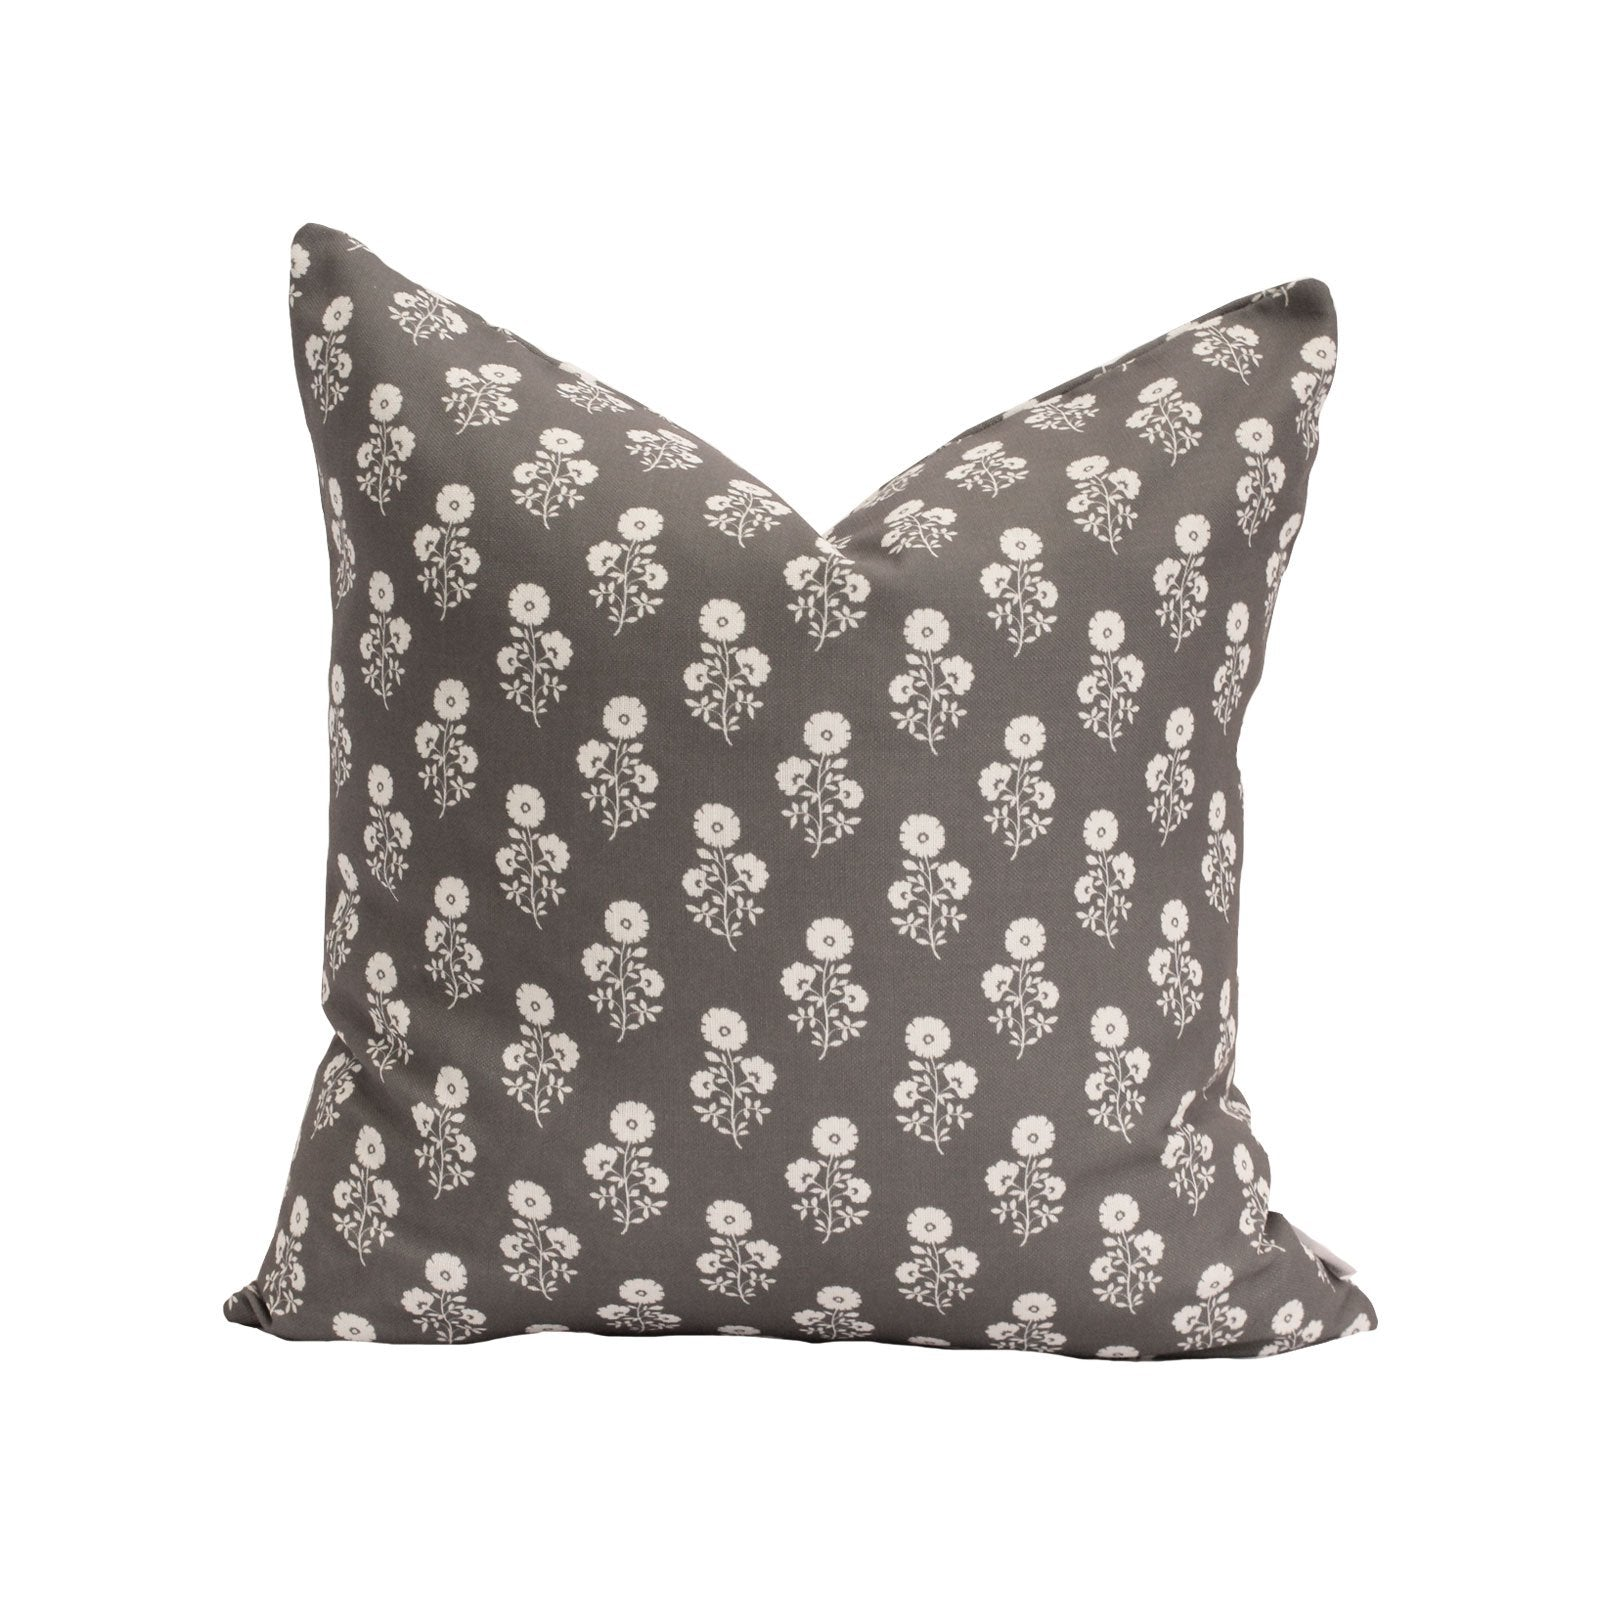 Julia Floral Pillow in Charcoal